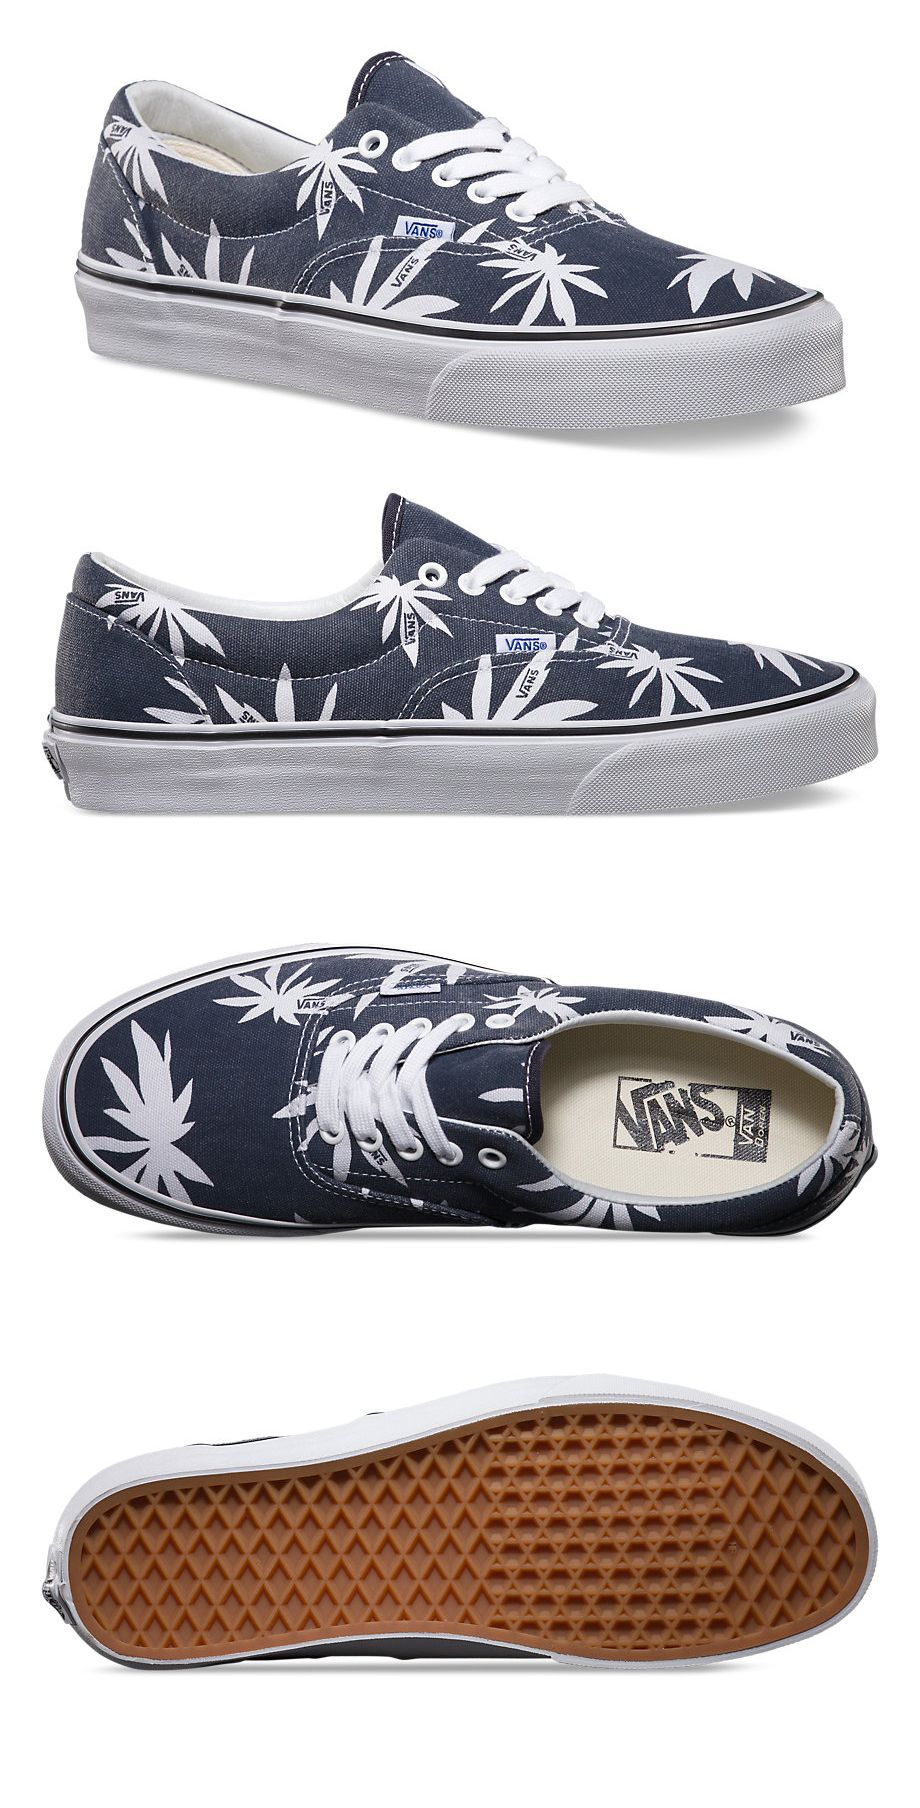 36733a12f669 Vans Footwear // Era Shoes Palm Print | vans in 2019 | Mens vans ...